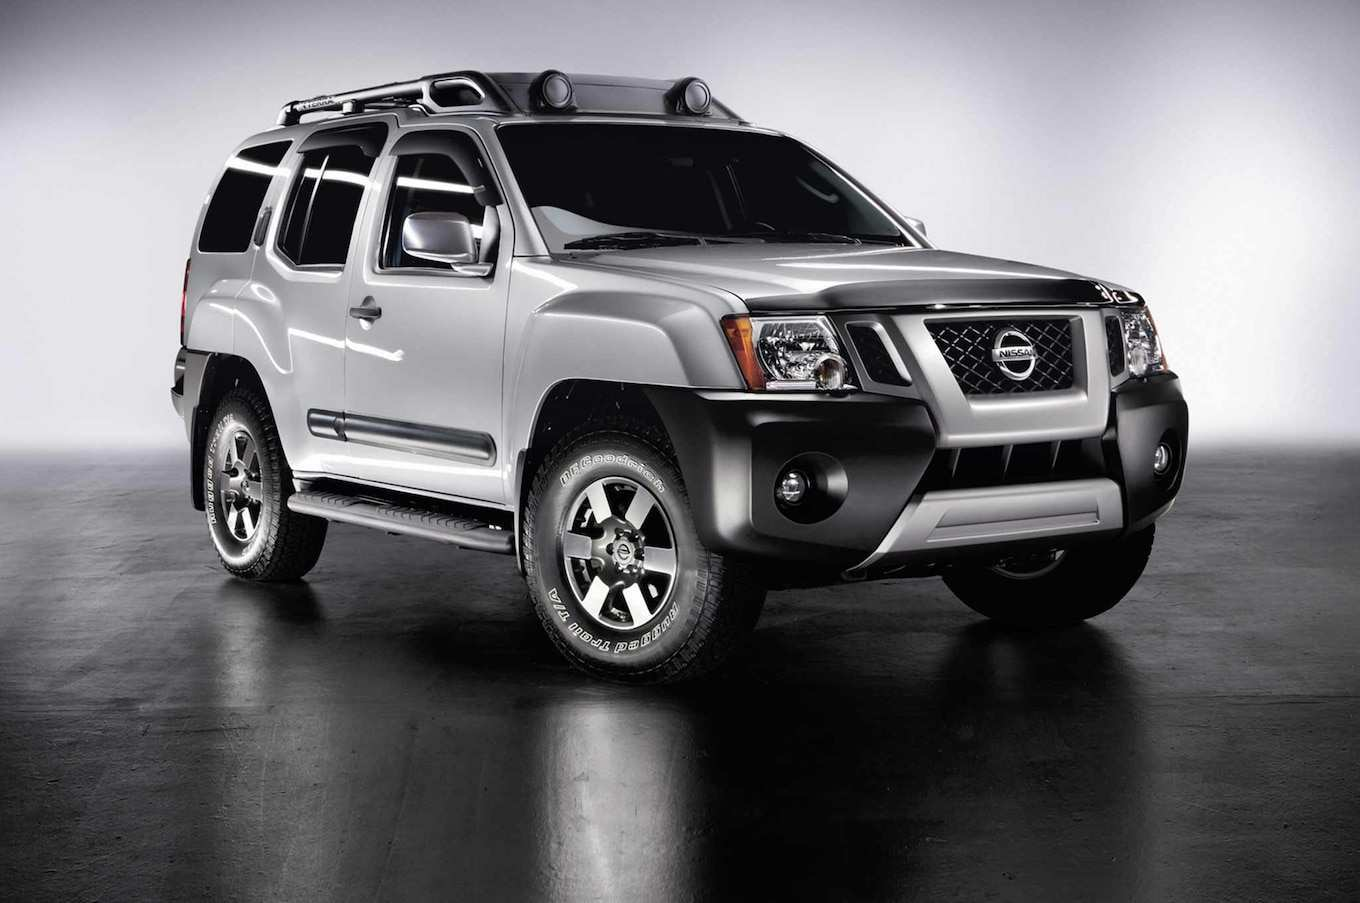 26 New 2020 Nissan Xterra Price And Release Date